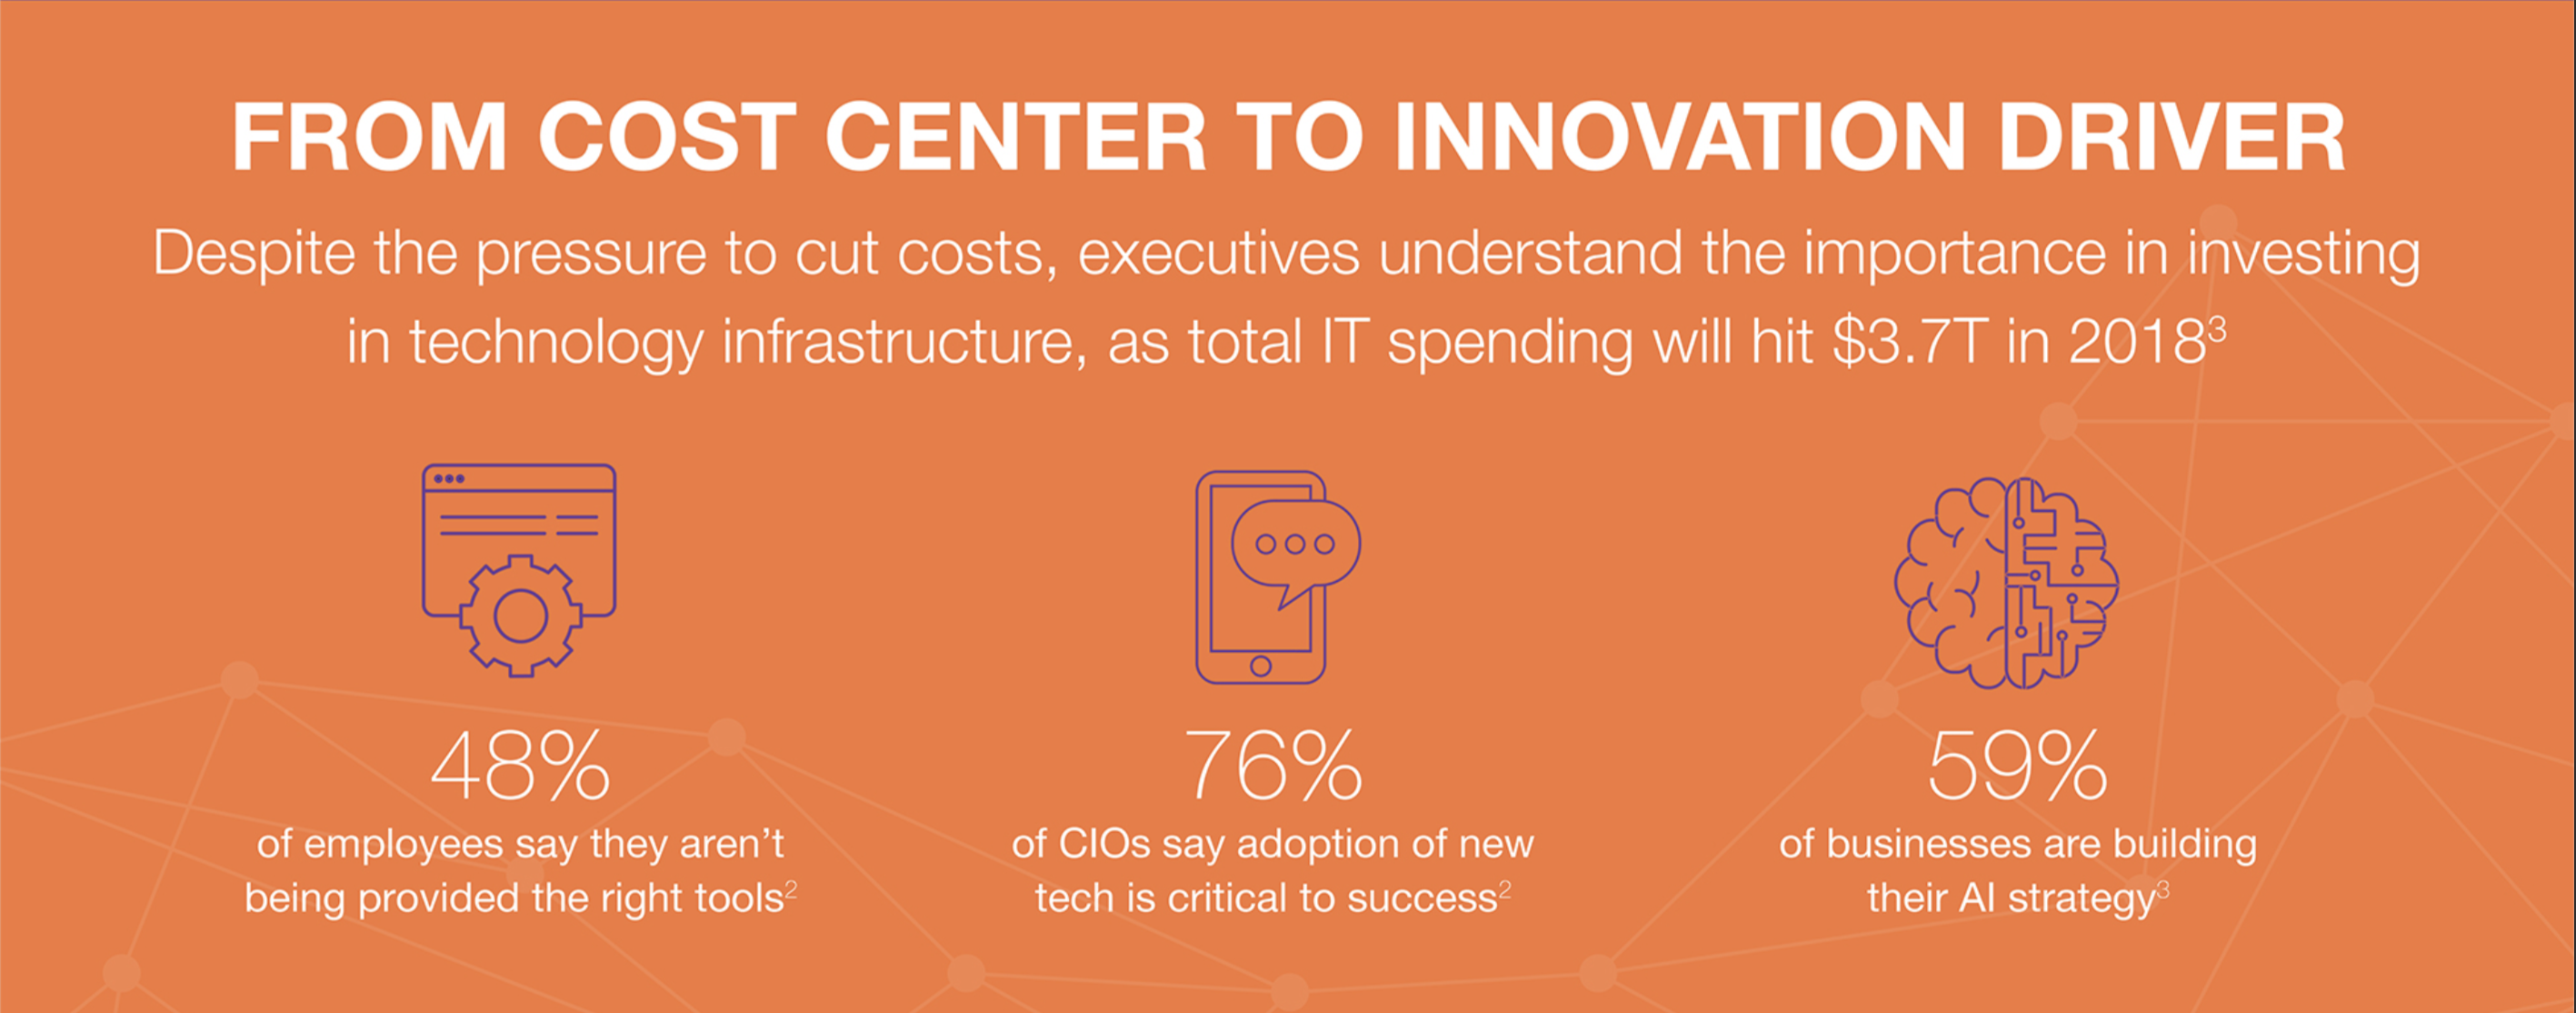 From cost center to innovation driver